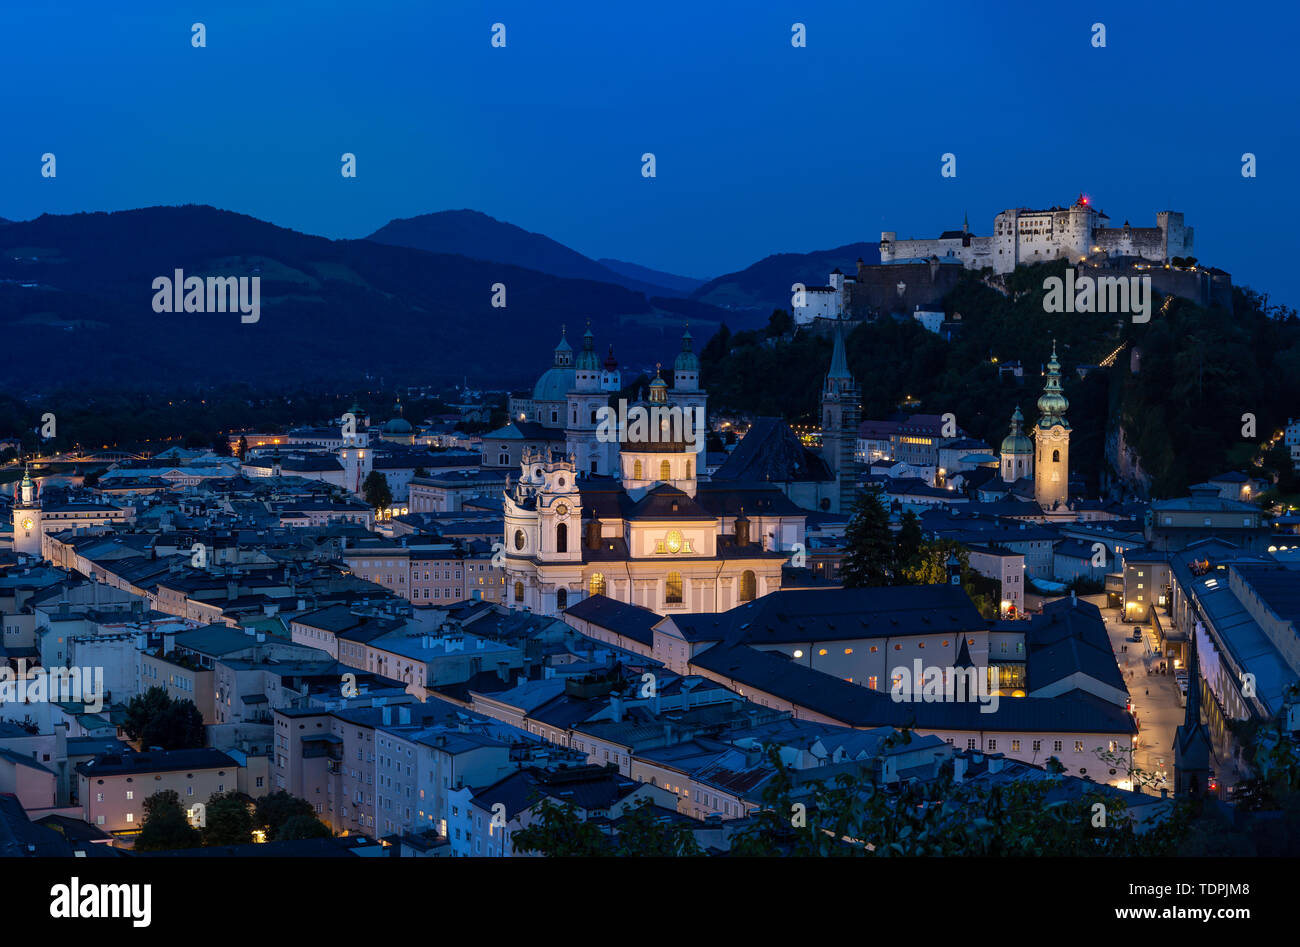 Salzburg Cityscape at Sunset, with Salzburg Cathedral and Hochensalzburg Fortress on top of the Hill. Photo was taken in summer Stock Photo